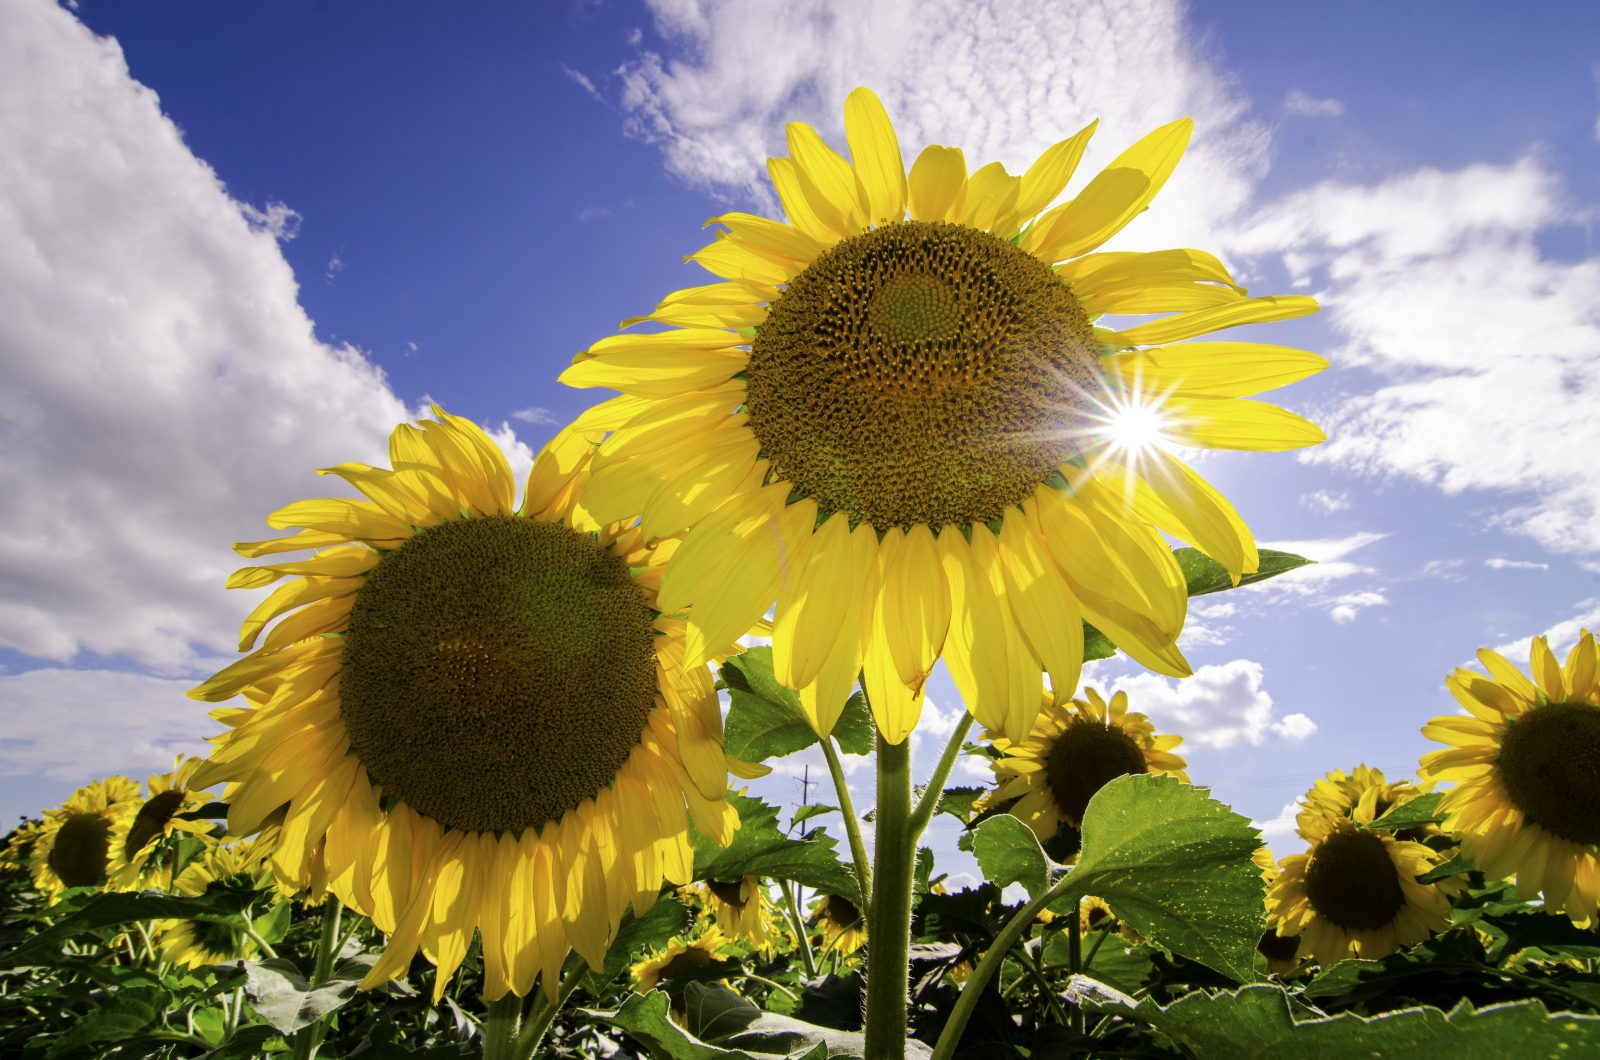 Sun Over Sunflowers